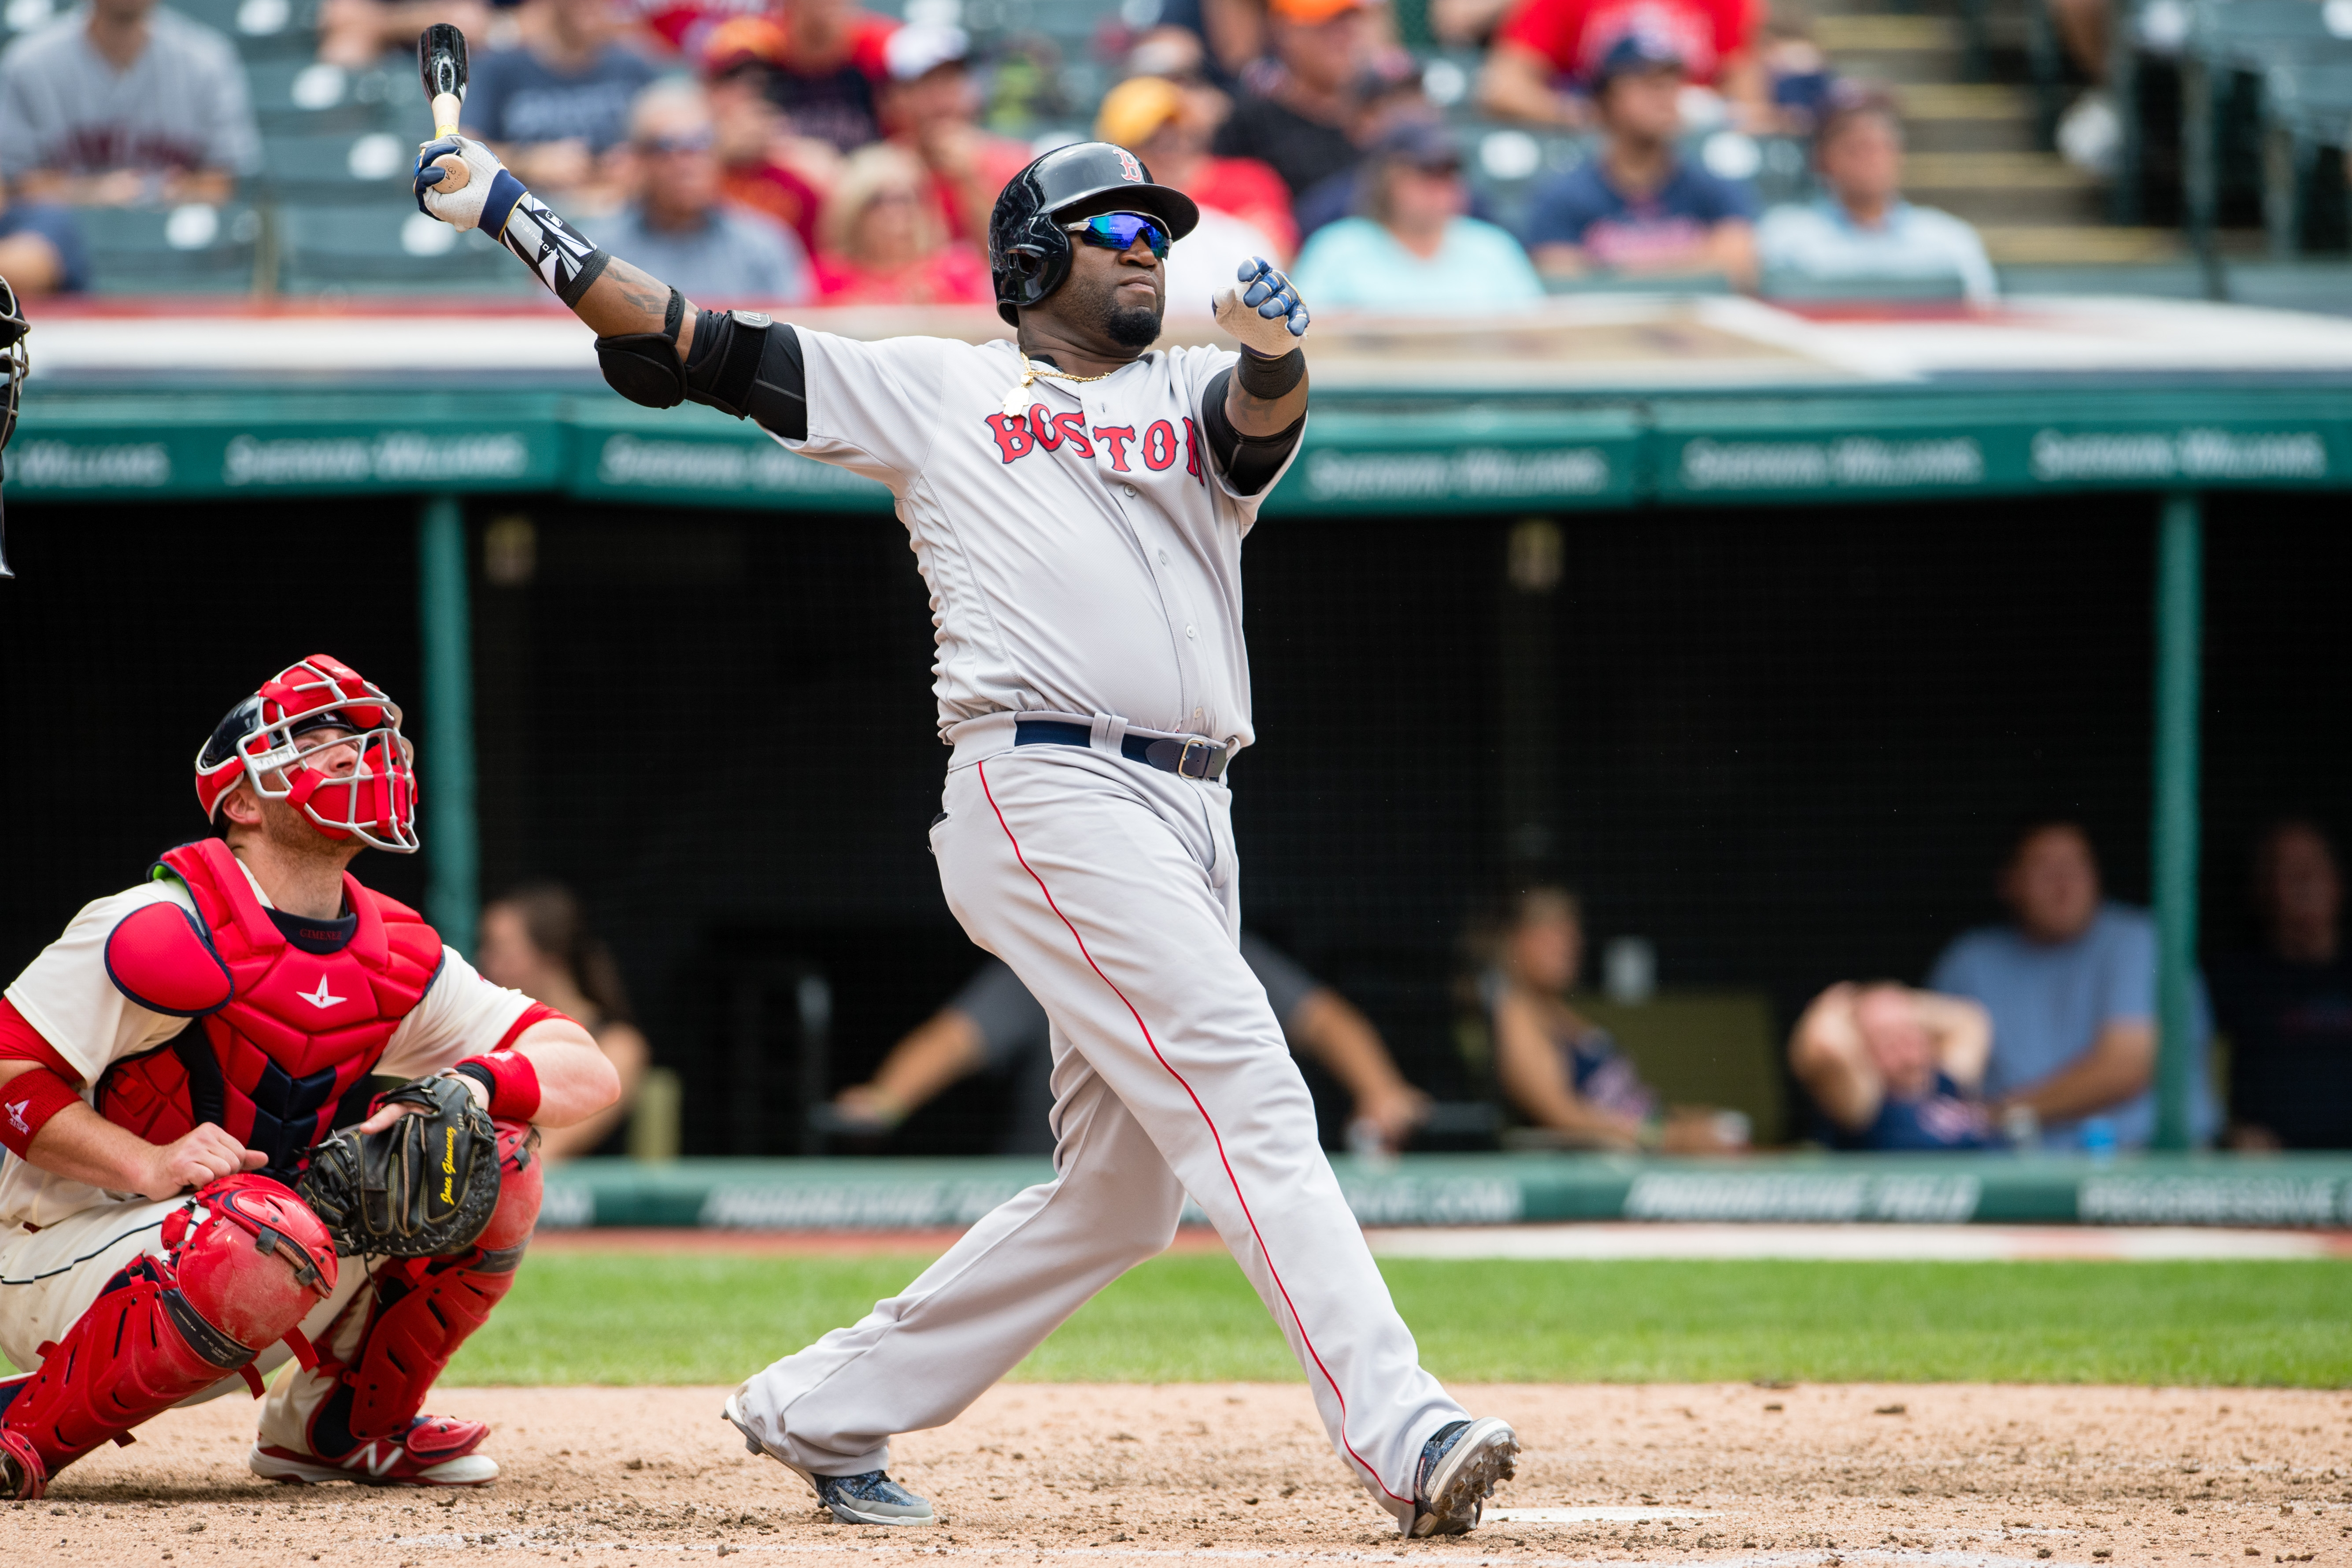 CLEVELAND, OH - AUGUST 15: David Ortiz #34 of the Boston Red Sox hits a two-run home run during the sixth inning against the Cleveland Indians at Progressive Field on August 15, 2016 in Cleveland, Ohio. (Photo by Jason Miller/Getty Images)